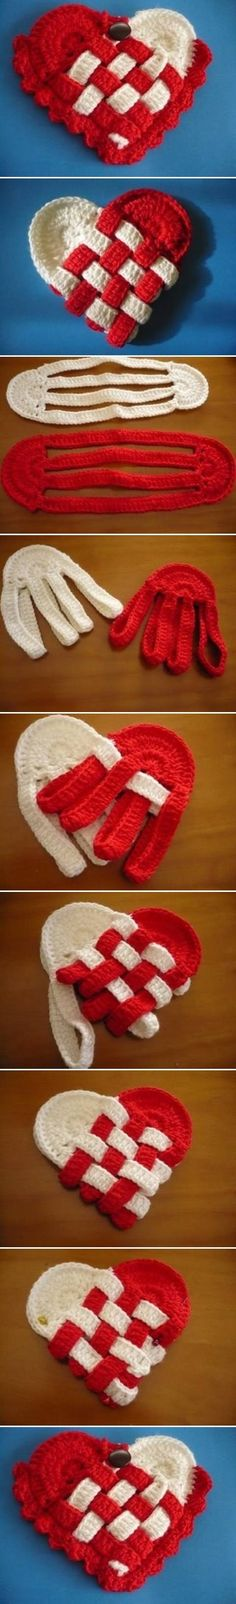 DIY Simple Crochet Heart